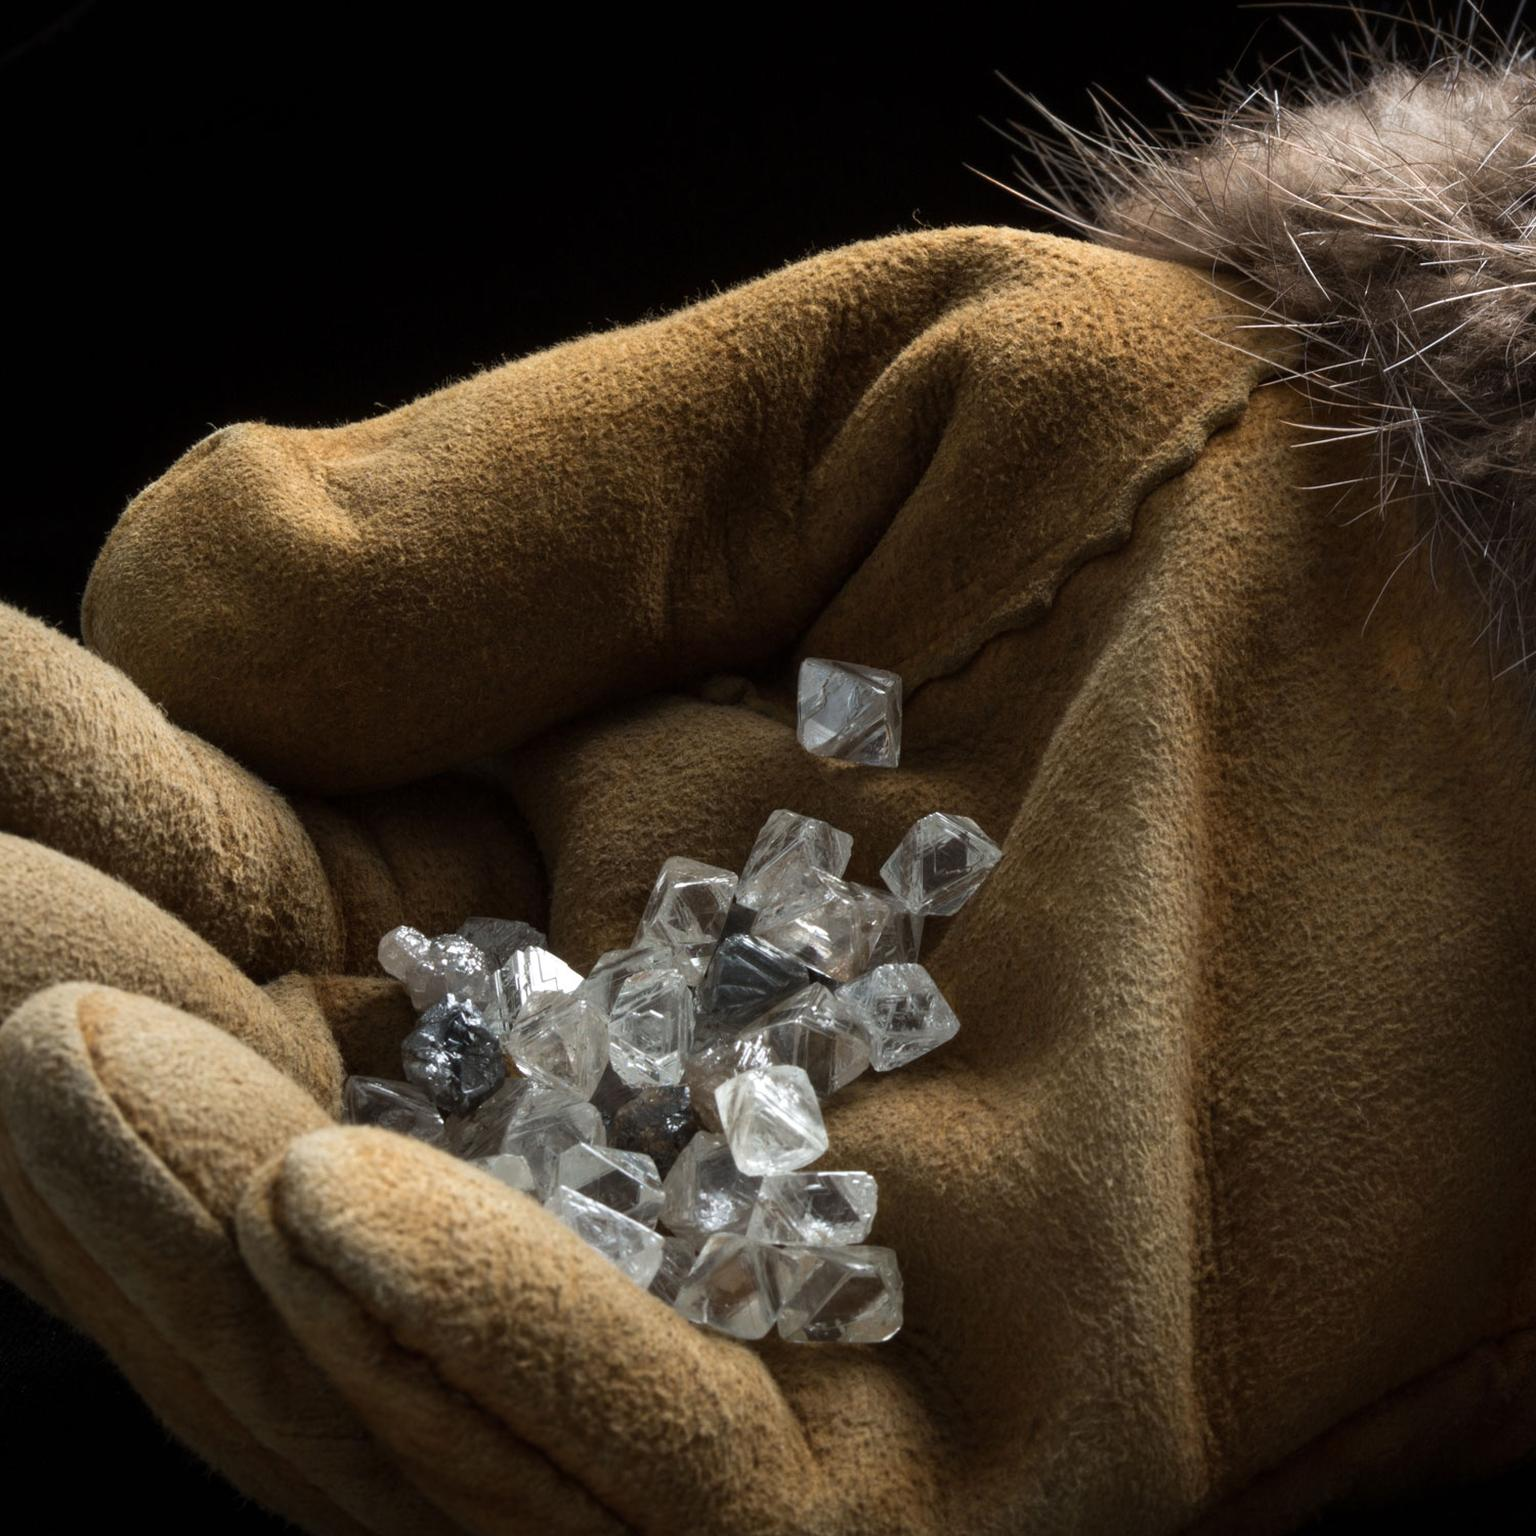 Rough diamonds from the Diavik diamond mine in Canada